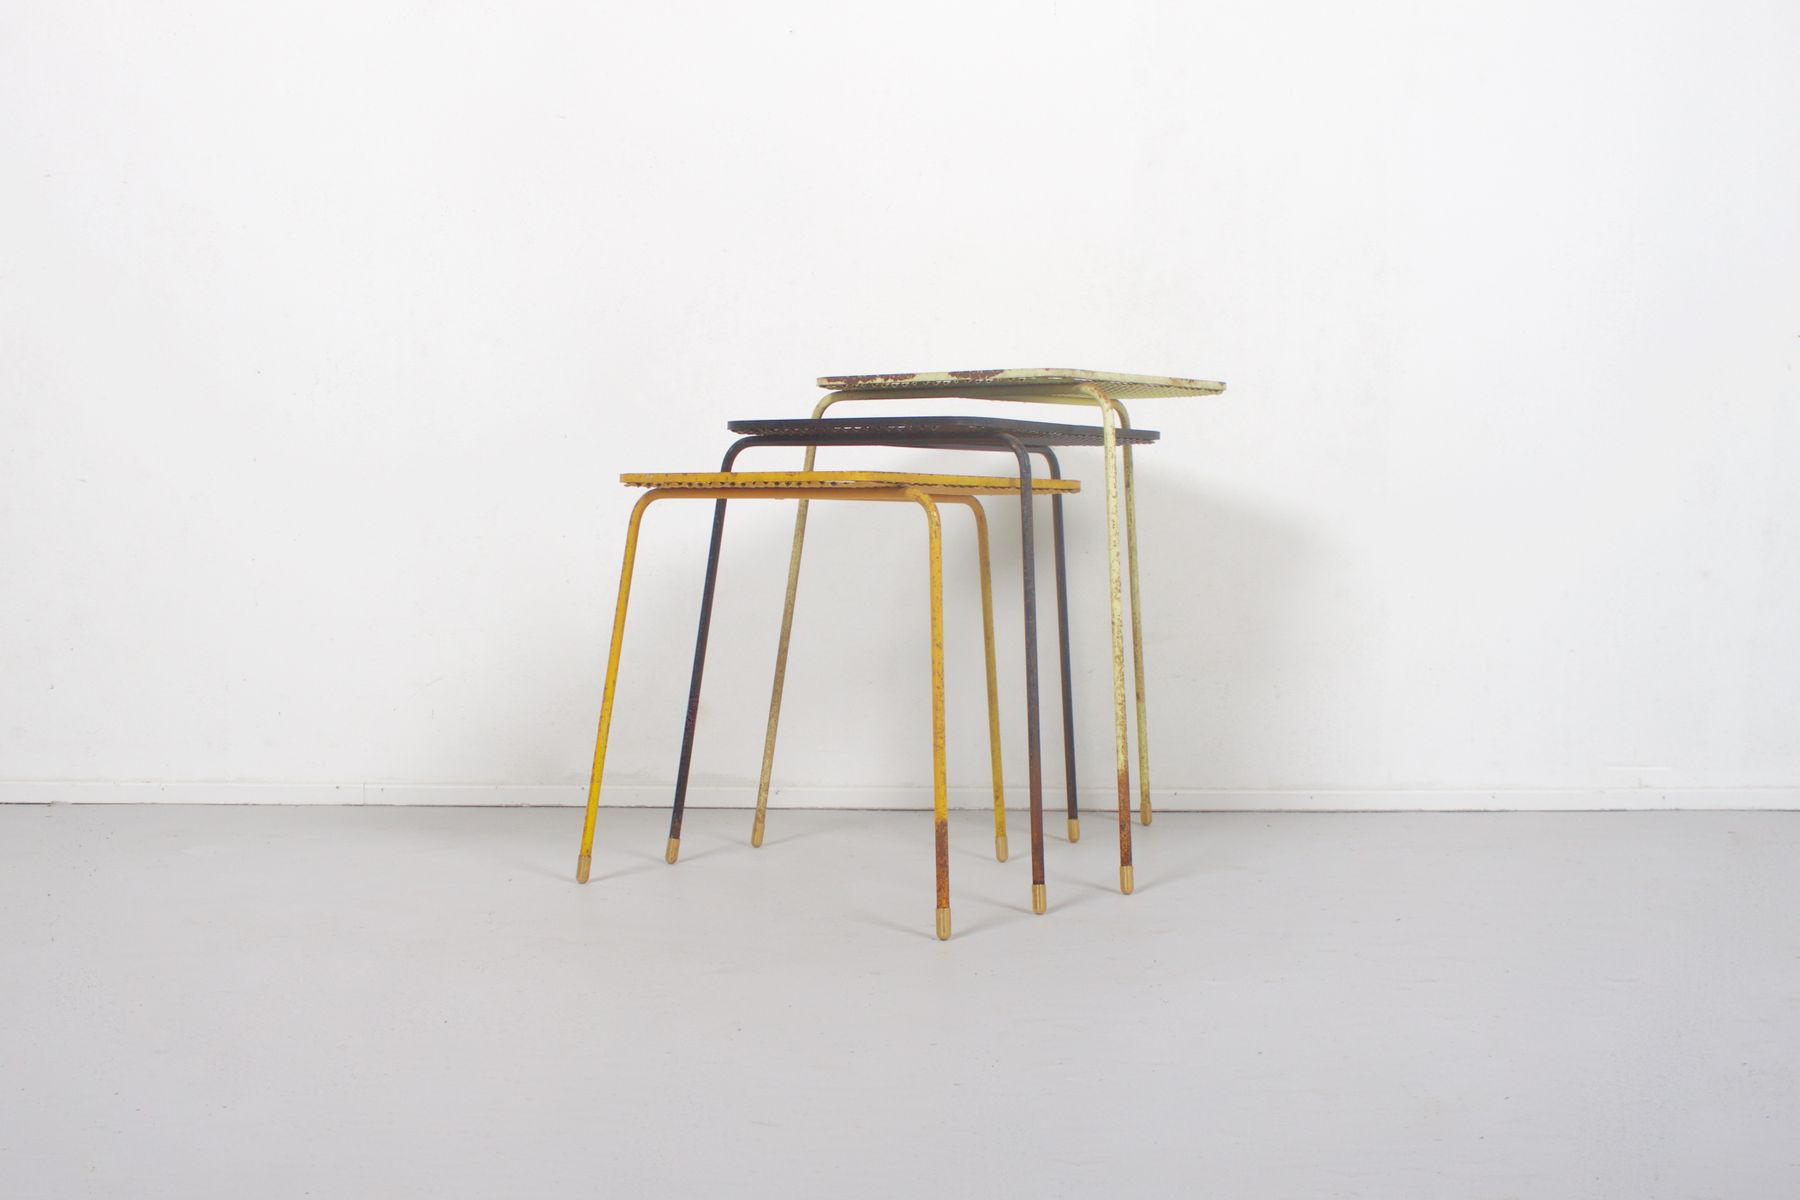 soumba nesting tables by mathieu mat got 1950s for sale at pamono. Black Bedroom Furniture Sets. Home Design Ideas